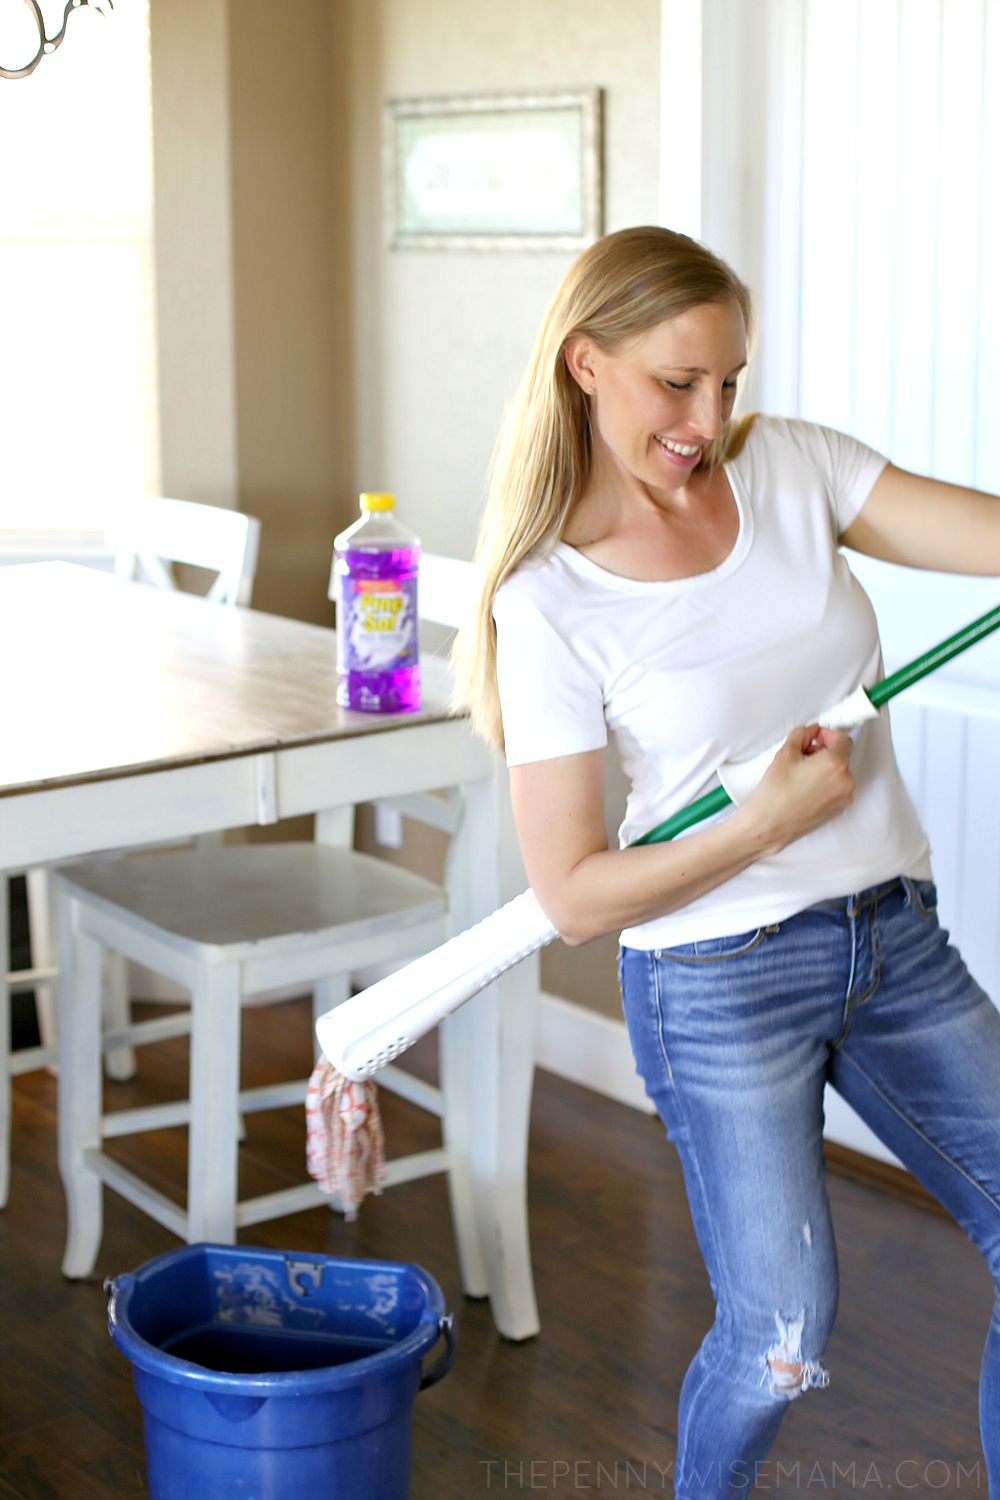 Make Cleaning Fun with Pine-Sol My Clean Moves Contest